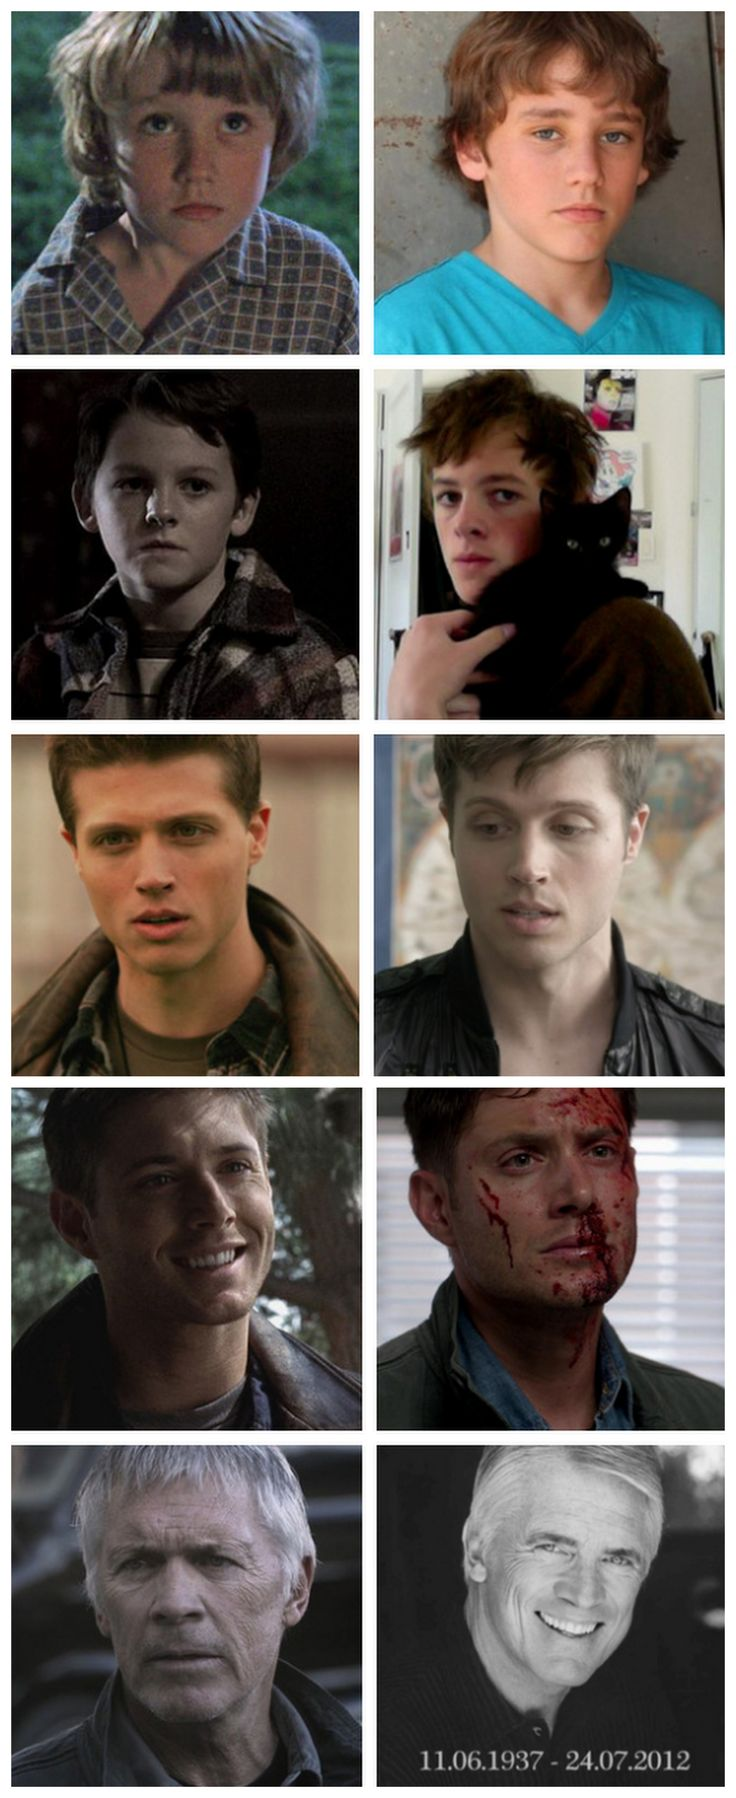 Actors who have played Dean Winchester - Then and Now: Hunter Brochu, Ridge Canipe, Brock Kelly, Jensen Ackles, and Chad Everett (Nicolai Guistra and Dylan Everett were not included?)